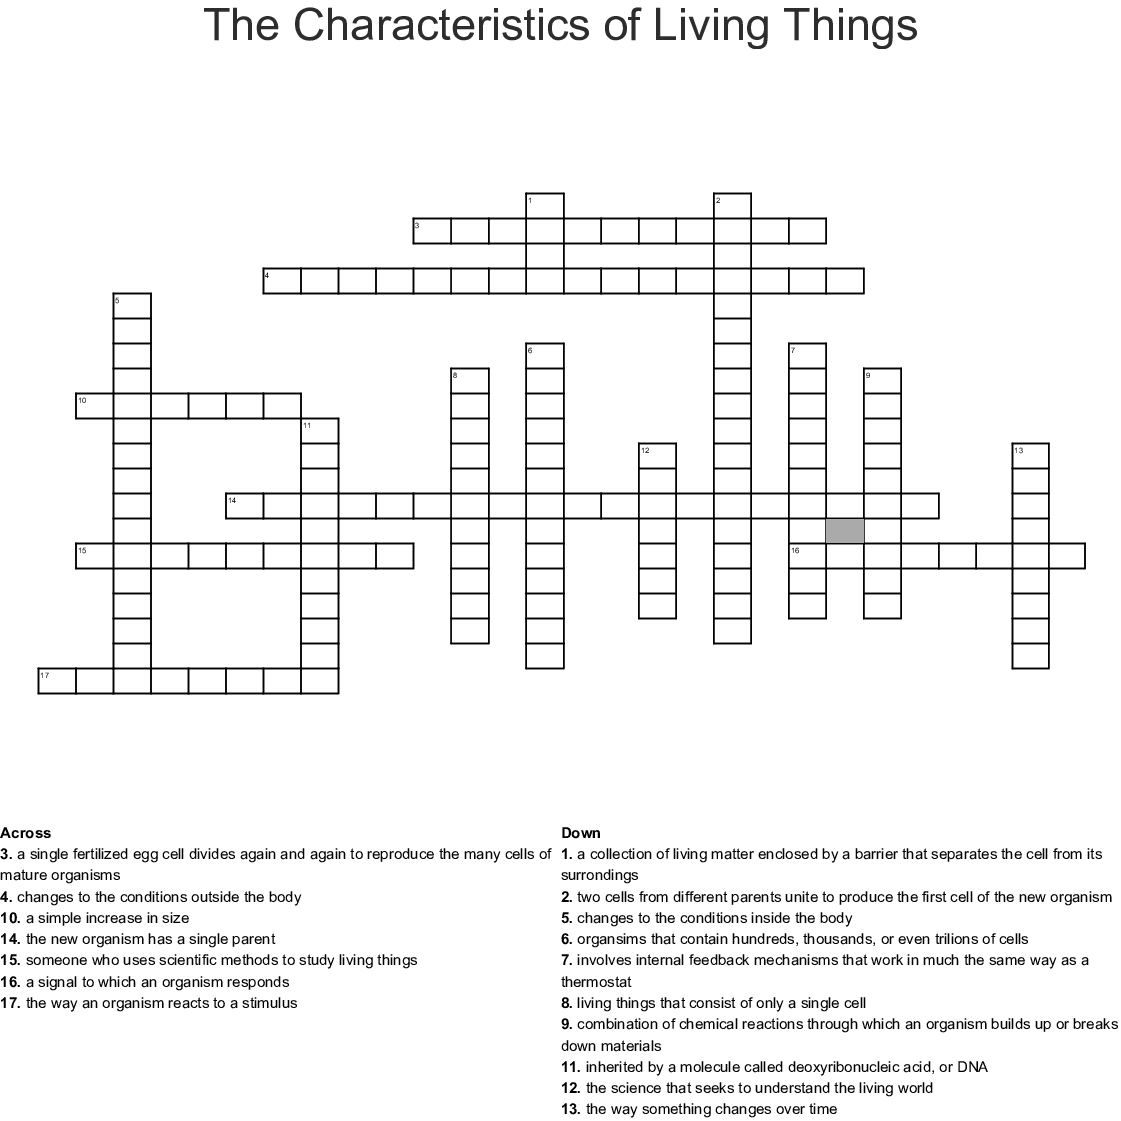 The Characteristics Of Living Things Crossword